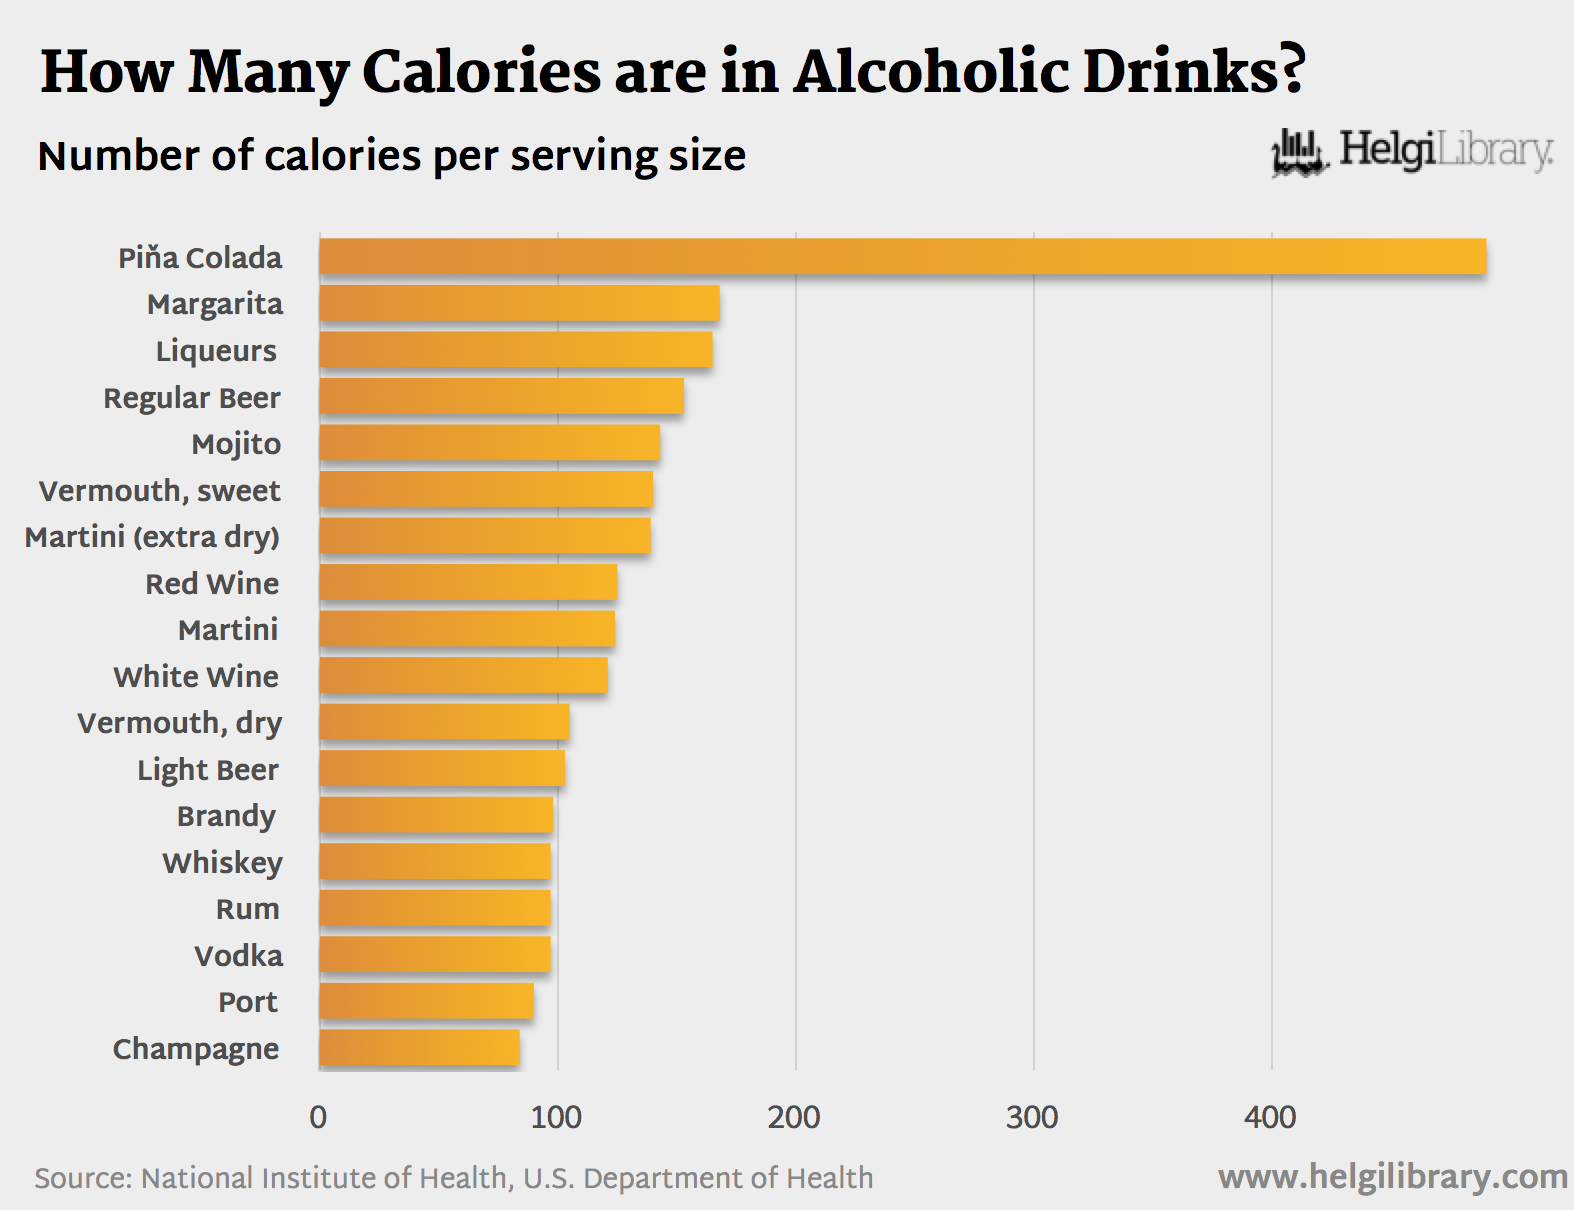 How many calories are in alcoholic drinks helgi library for How many calories are in fish